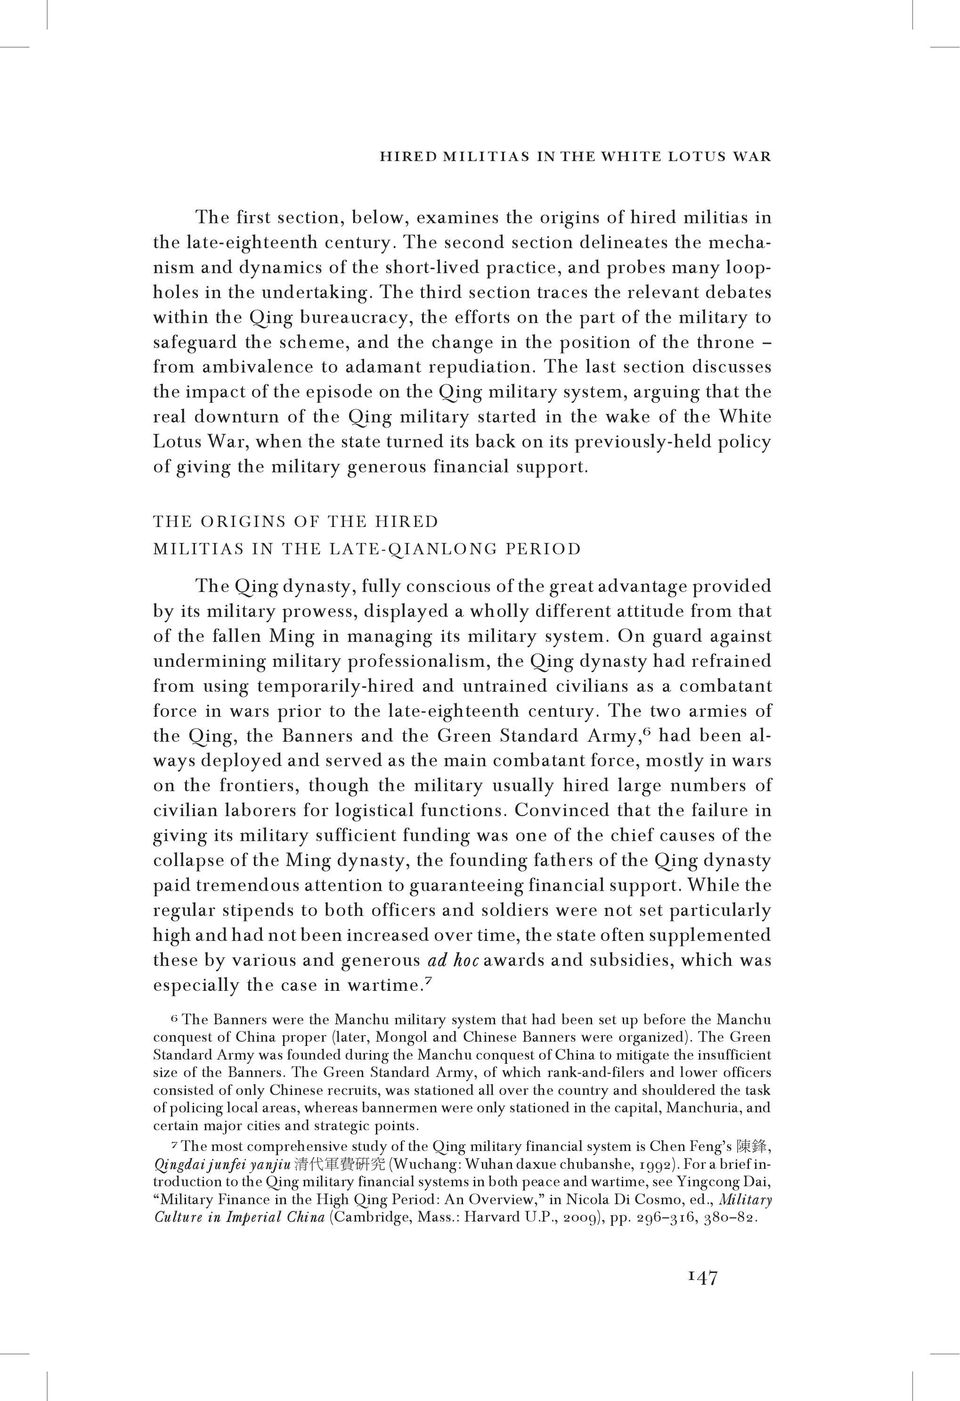 The third section traces the relevant debates within the Qing bureaucracy, the efforts on the part of the military to safeguard the scheme, and the change in the position of the throne from